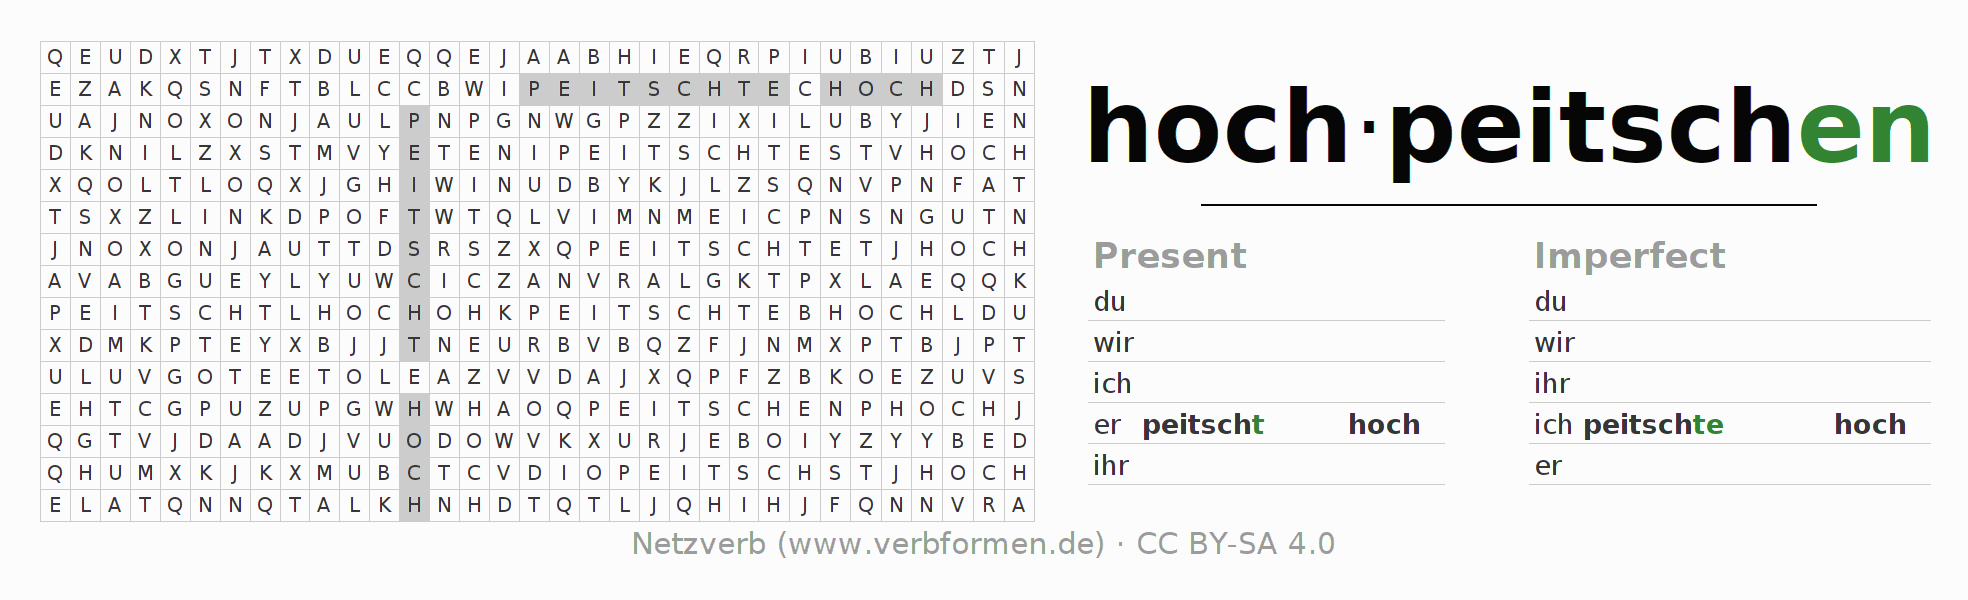 Word search puzzle for the conjugation of the verb hochpeitschen